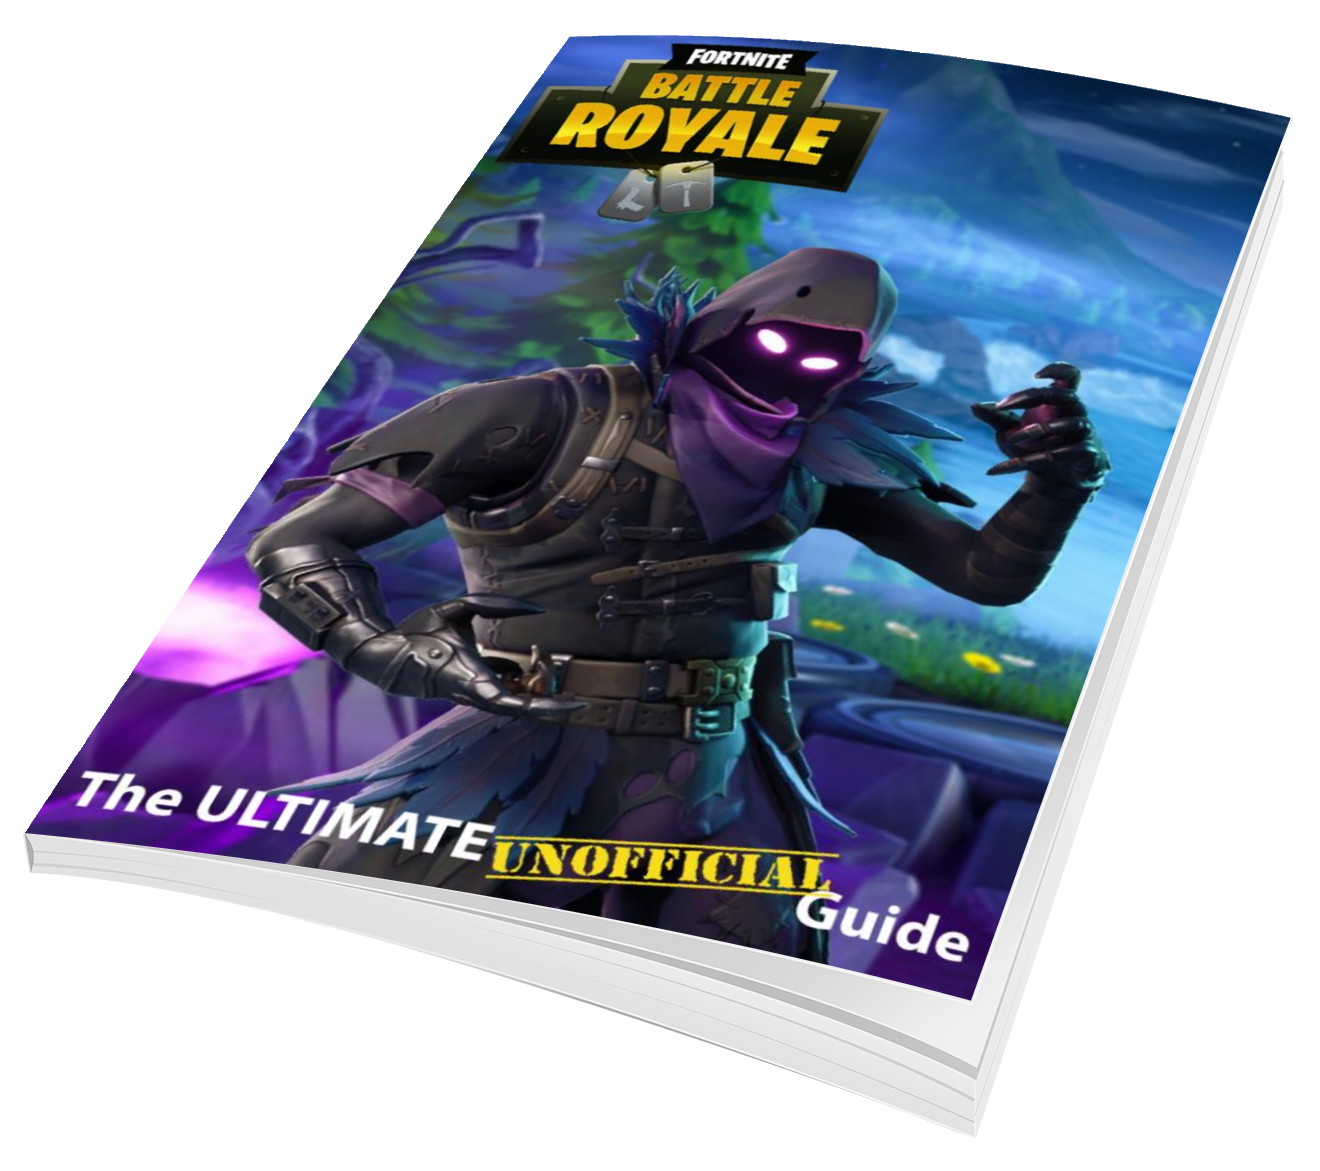 The Ultimate Unofficial Guide Review-The Ultimate Unofficial Guide Download